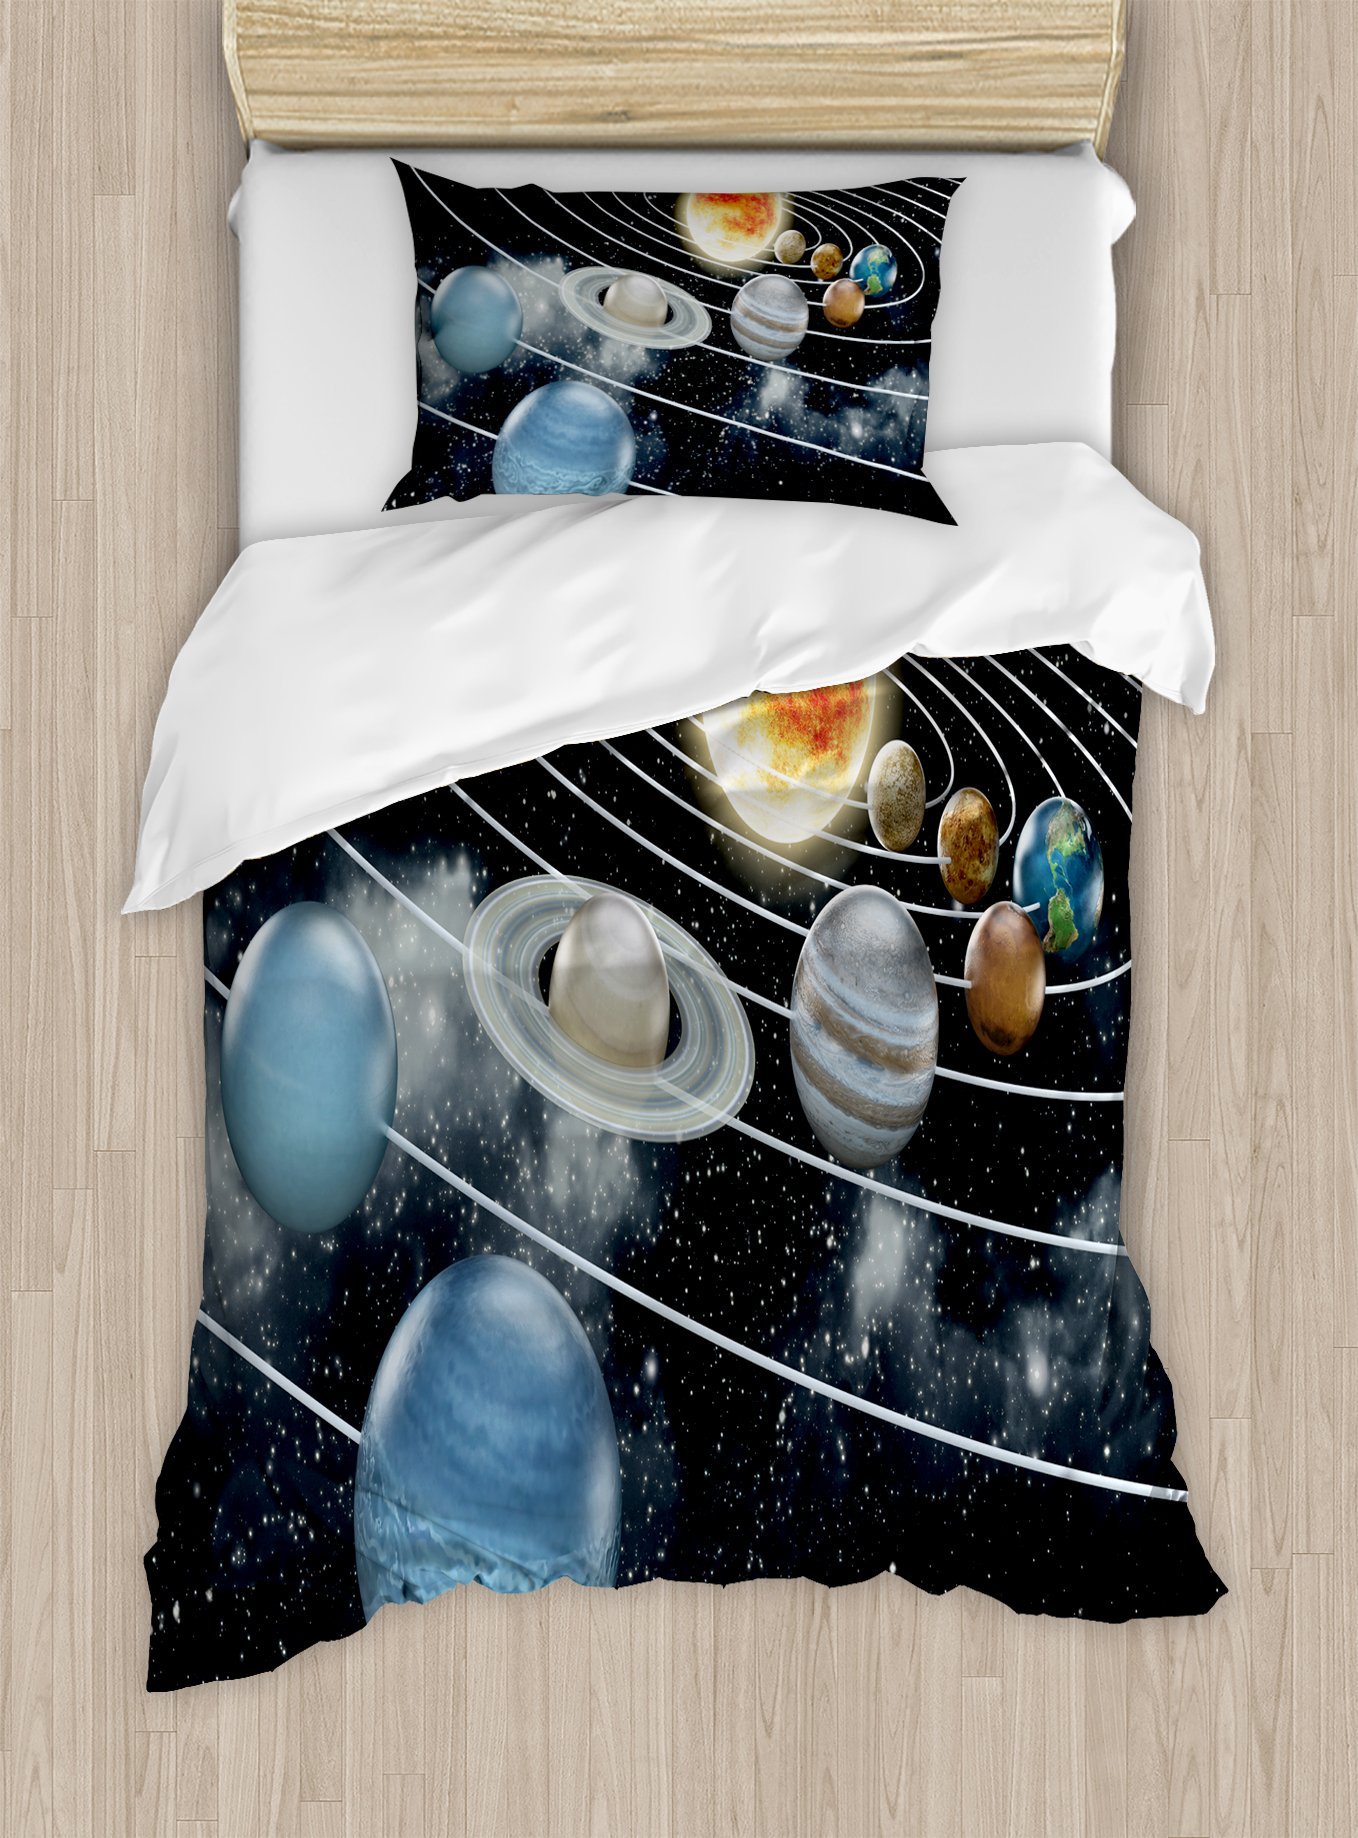 Ambesonne Galaxy Duvet Cover Set Twin Size, Solar System All Eight Planets and The Sun Pluto Jupiter Mars Venus Science Fiction, Decorative 2 Piece Bedding Set with 1 Pillow Sham, Black Grey